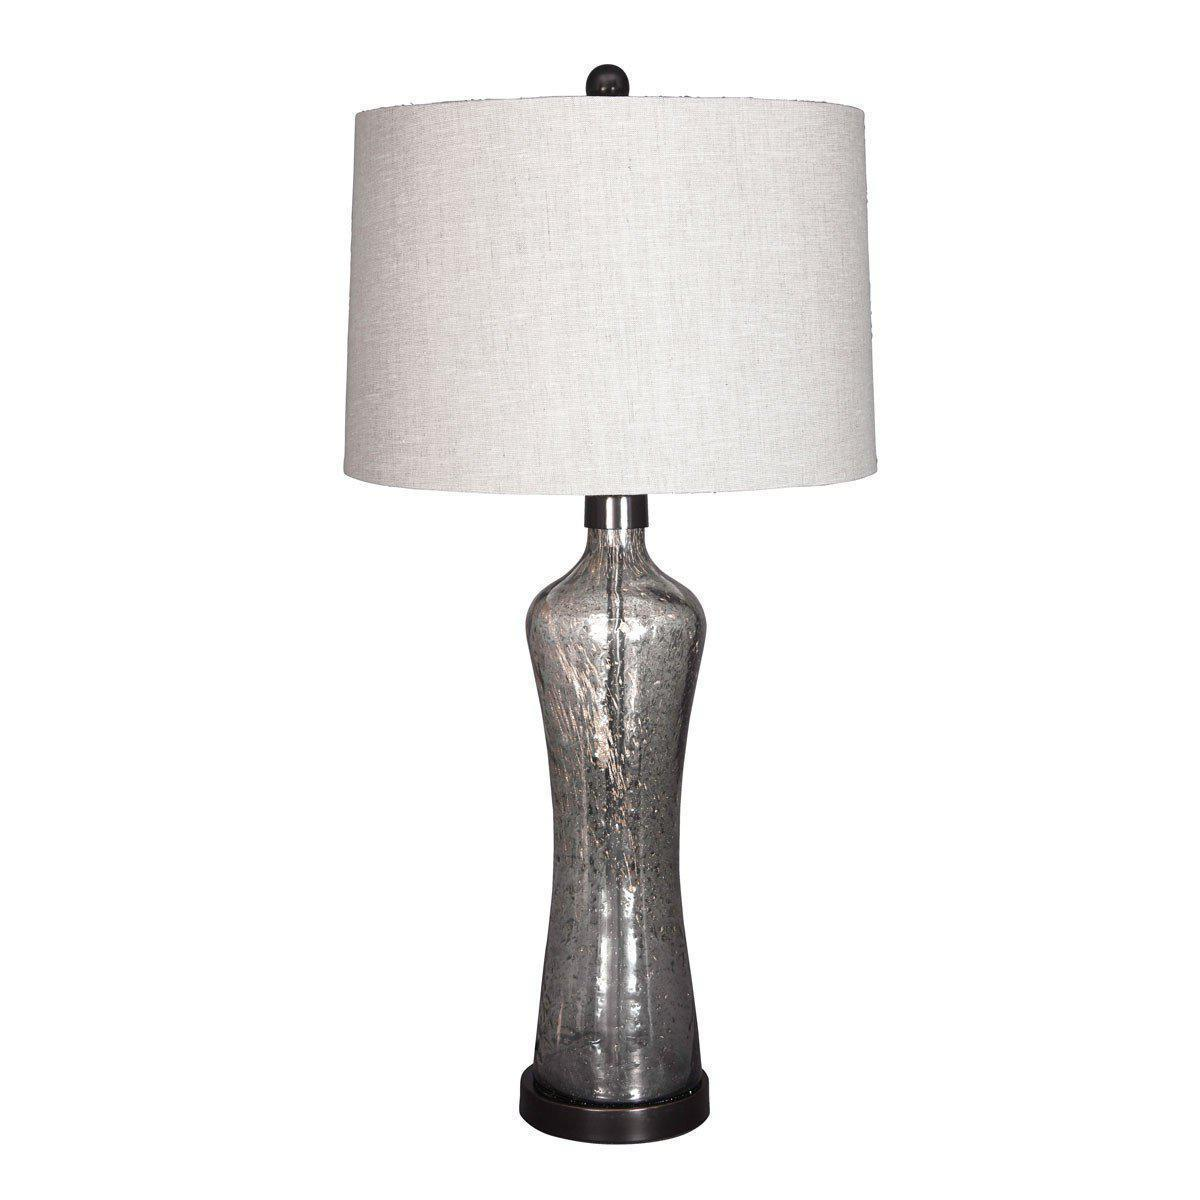 Sharrona Table Lamp